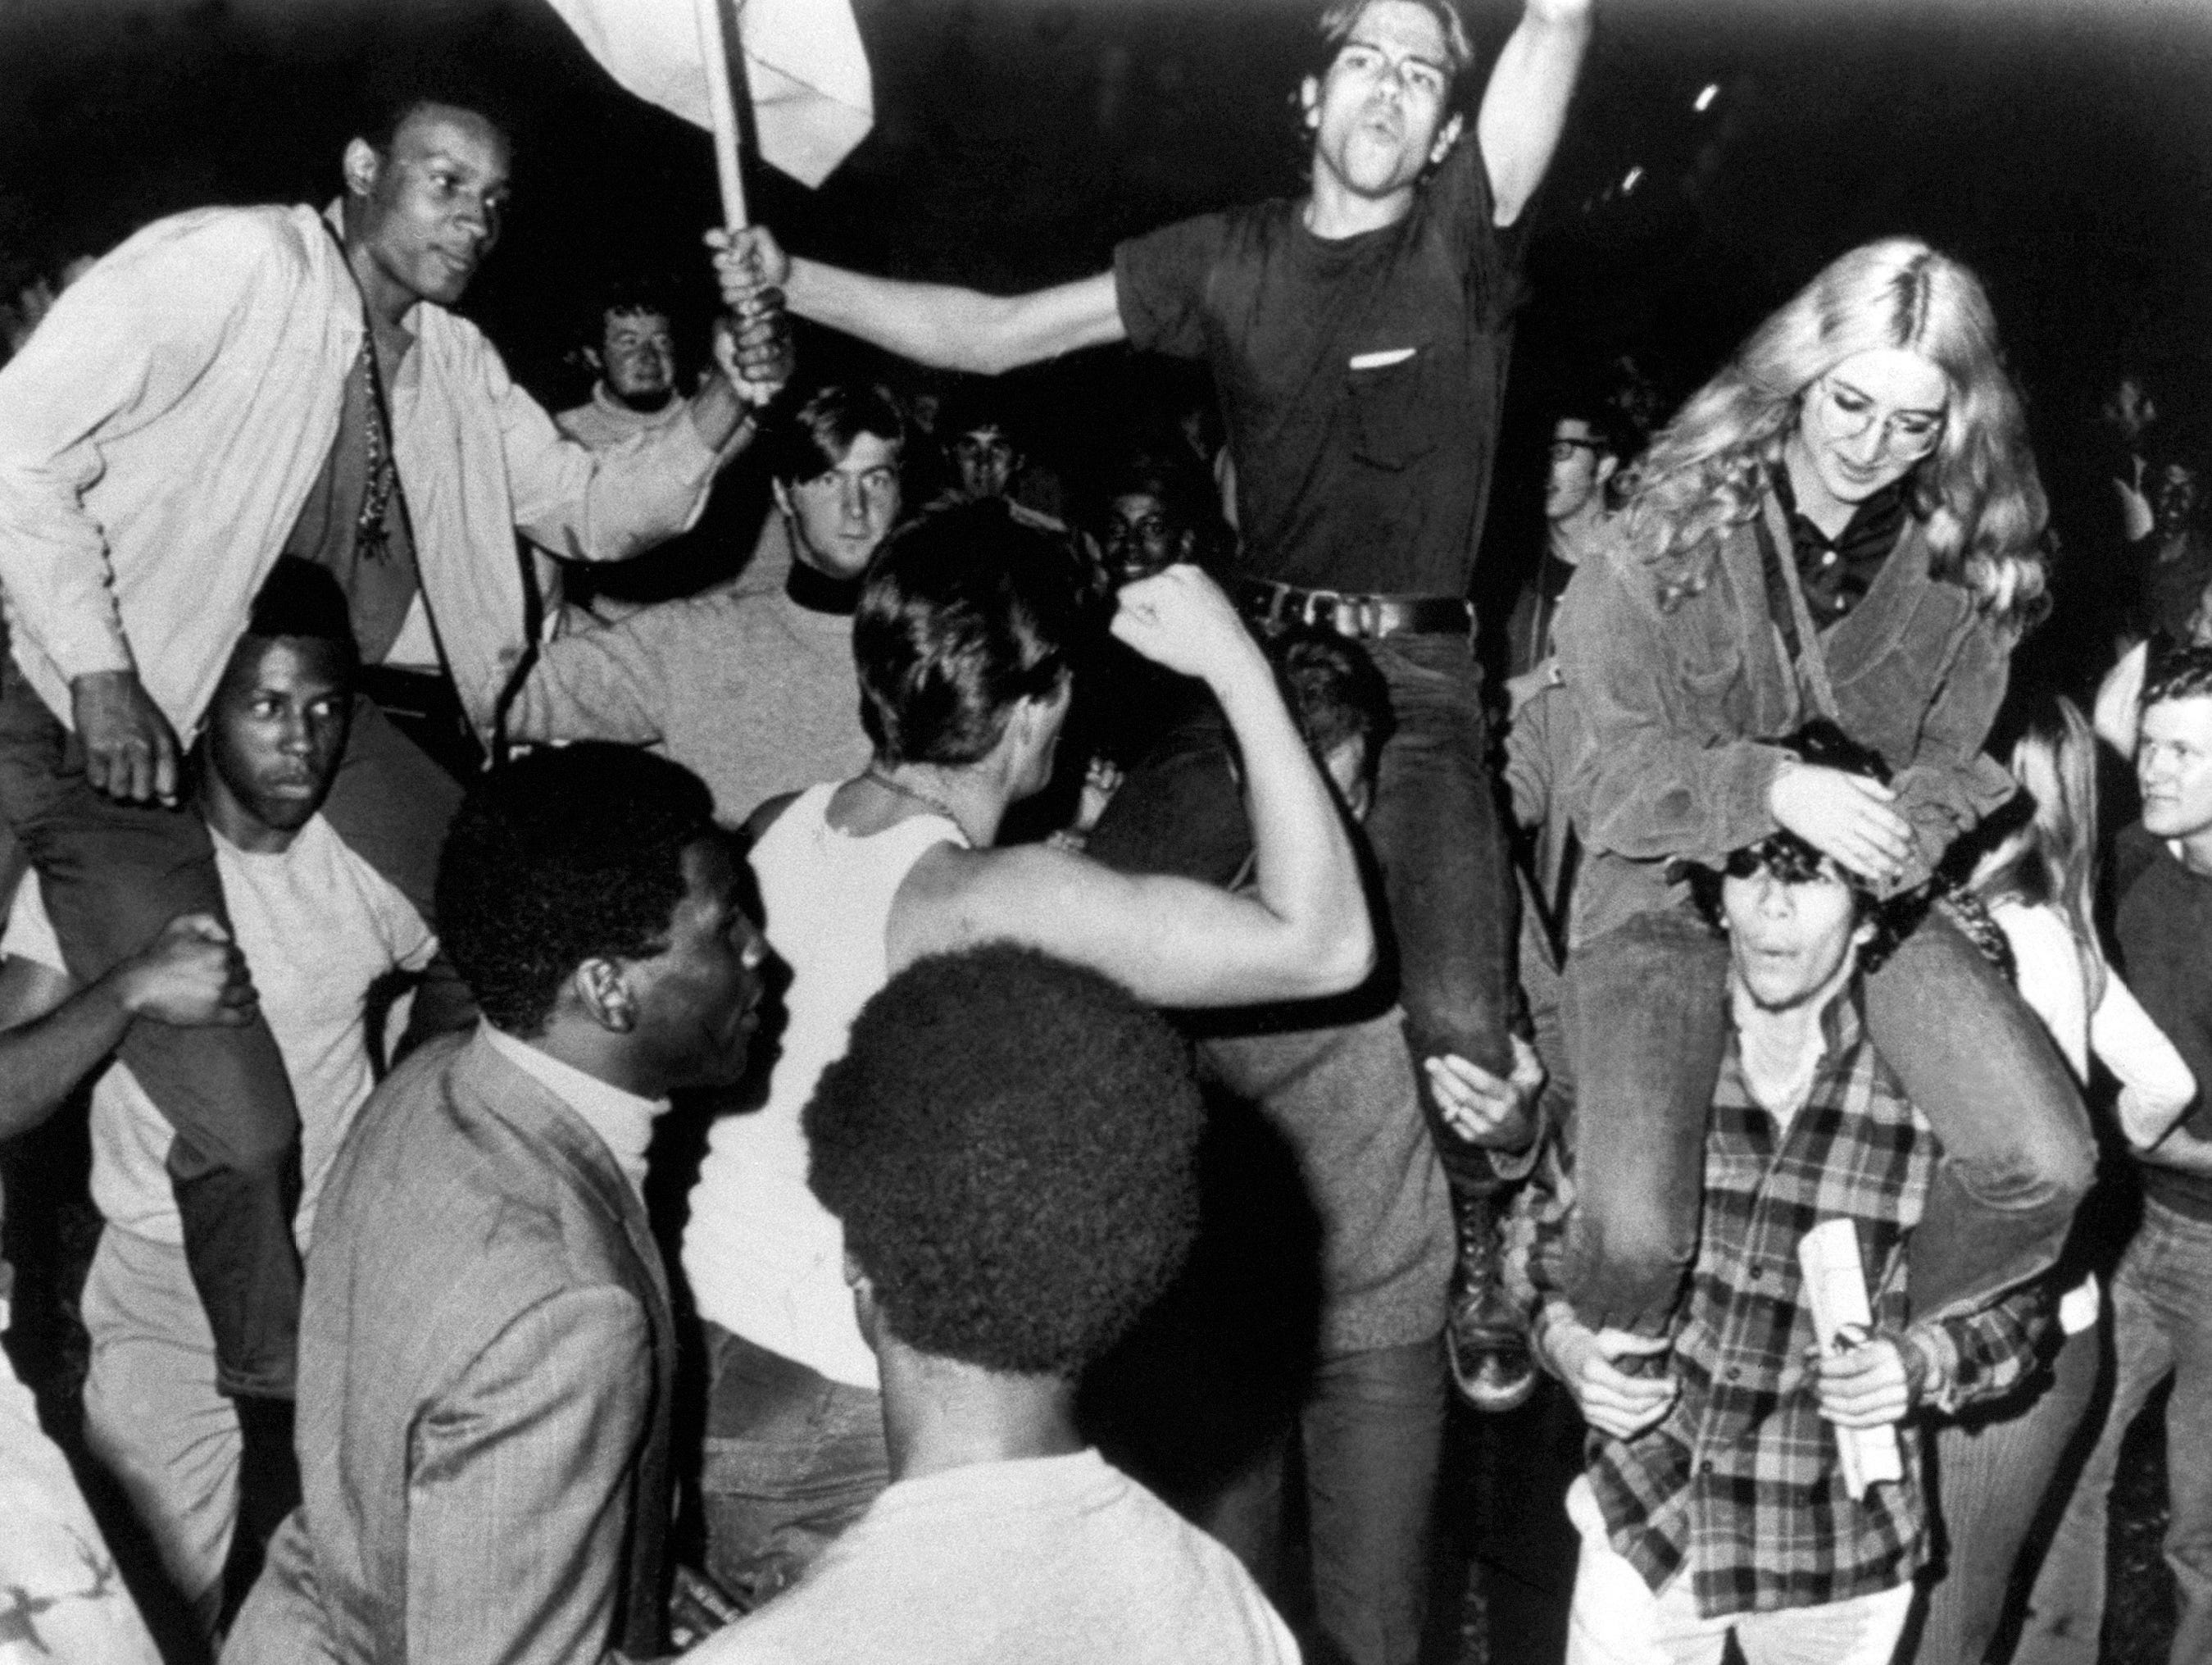 Protesters whoop it up before being chased from Chicago's Lincoln Park on August 26, 1968. They were in town to demonstrate at the Democratic National Convention.